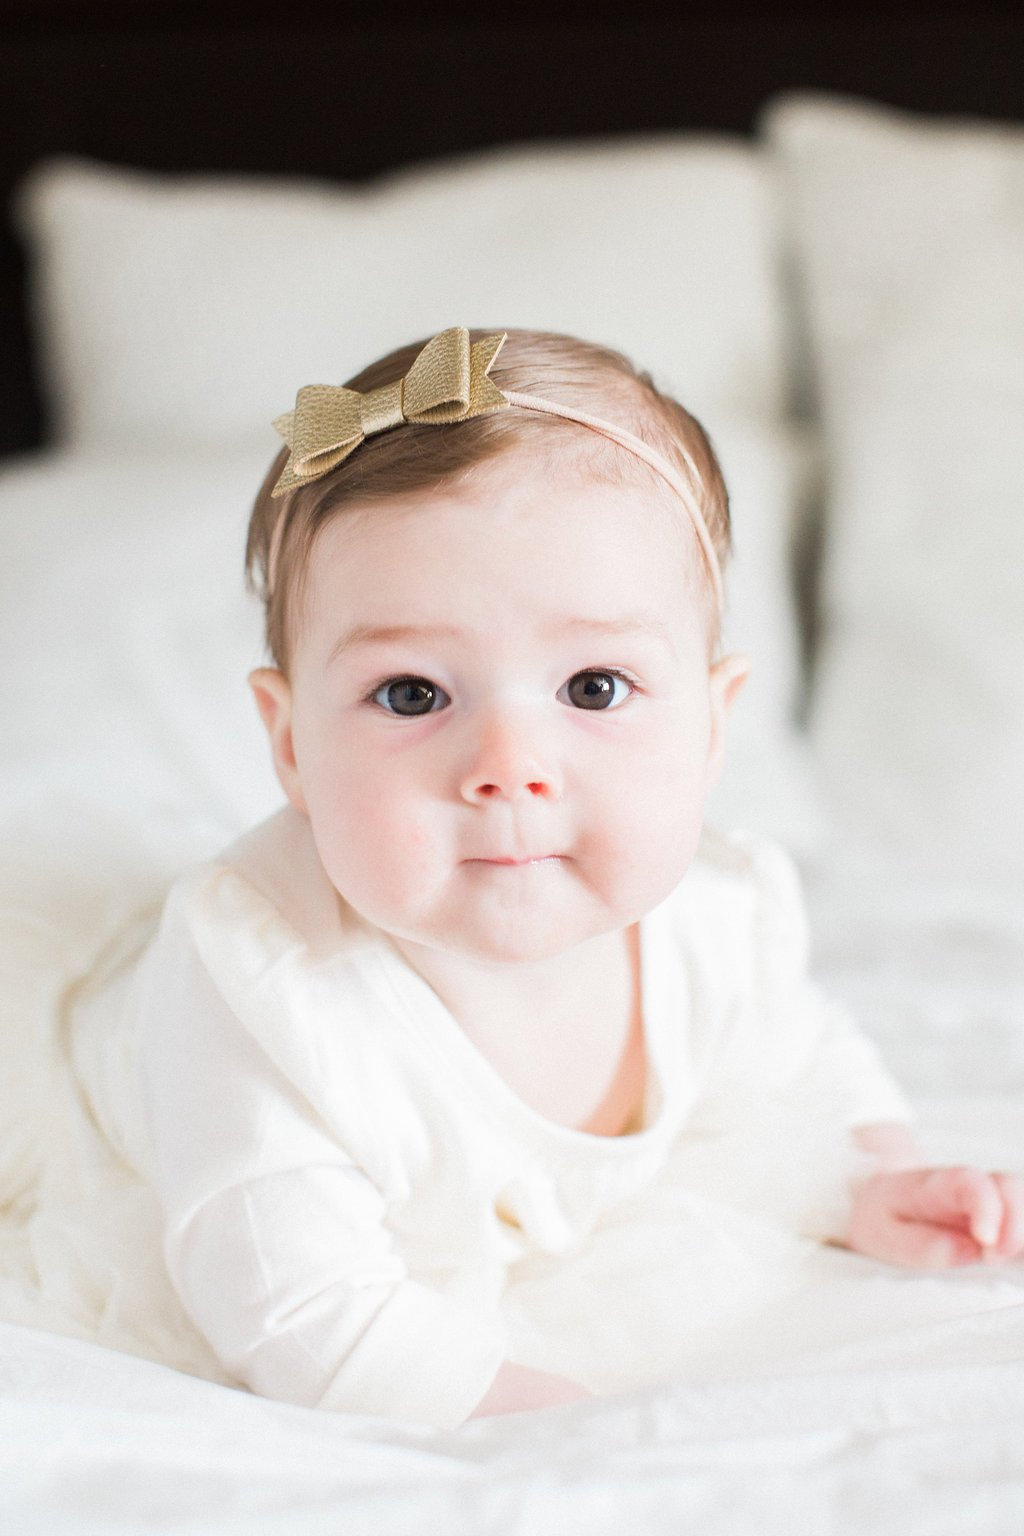 Portrait of baby on a bed in white dress with gold bow during in-home lifestyle family photography session